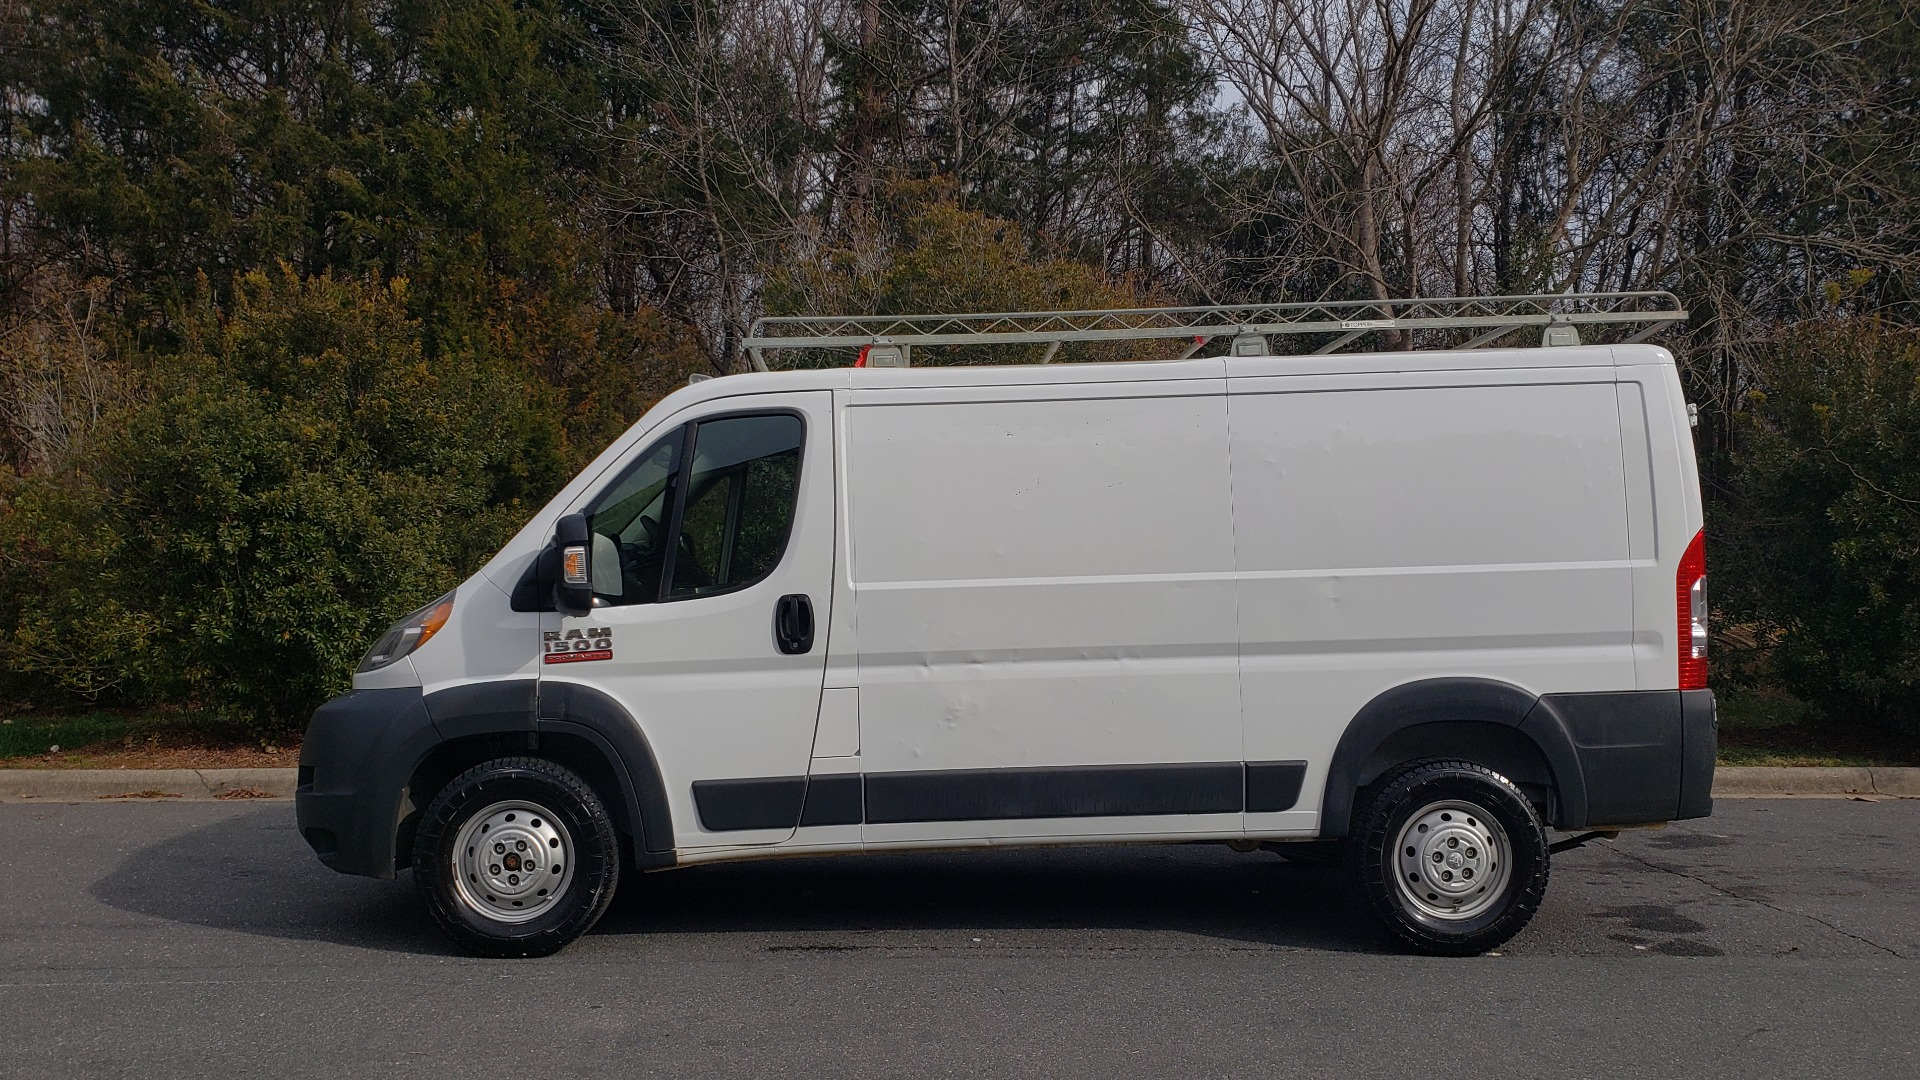 Used 2016 Ram PROMASTER CARGO VAN 136 WB / LOW ROOF / 3.6L V6 / 6-SPD AUTO / REARVIEW for sale $17,500 at Formula Imports in Charlotte NC 28227 2